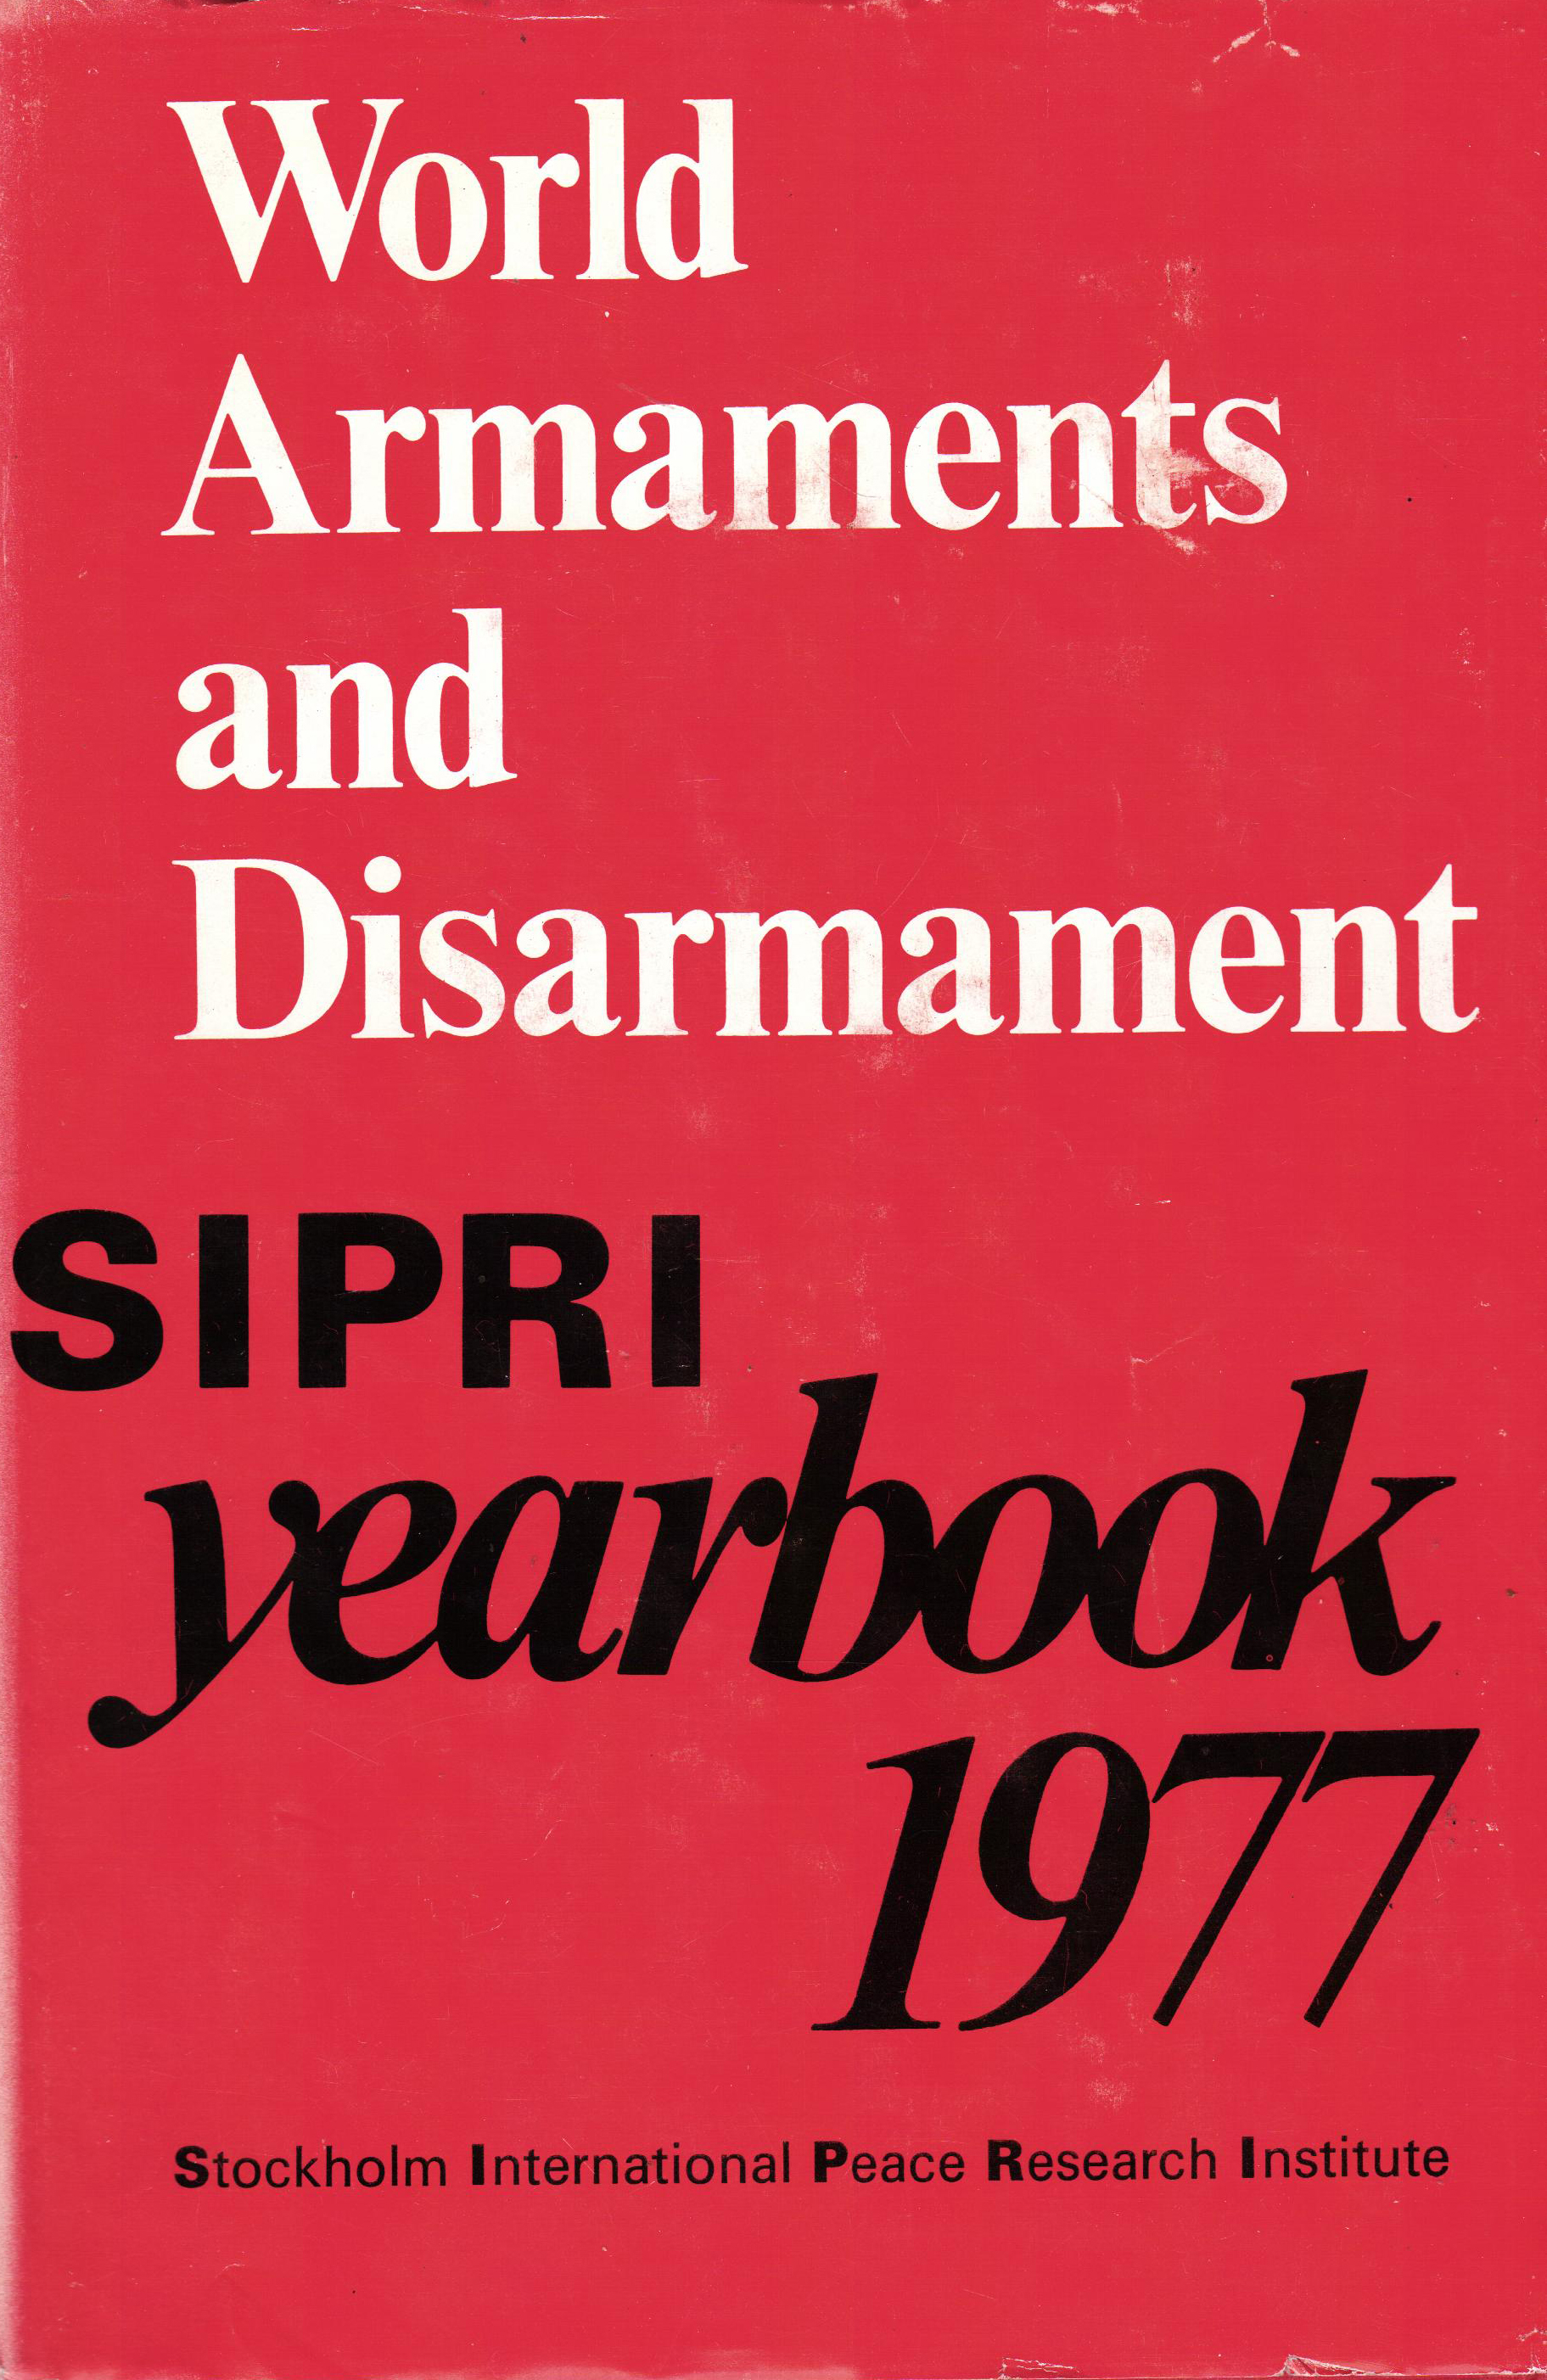 SIPRI yearbook 1977 cover